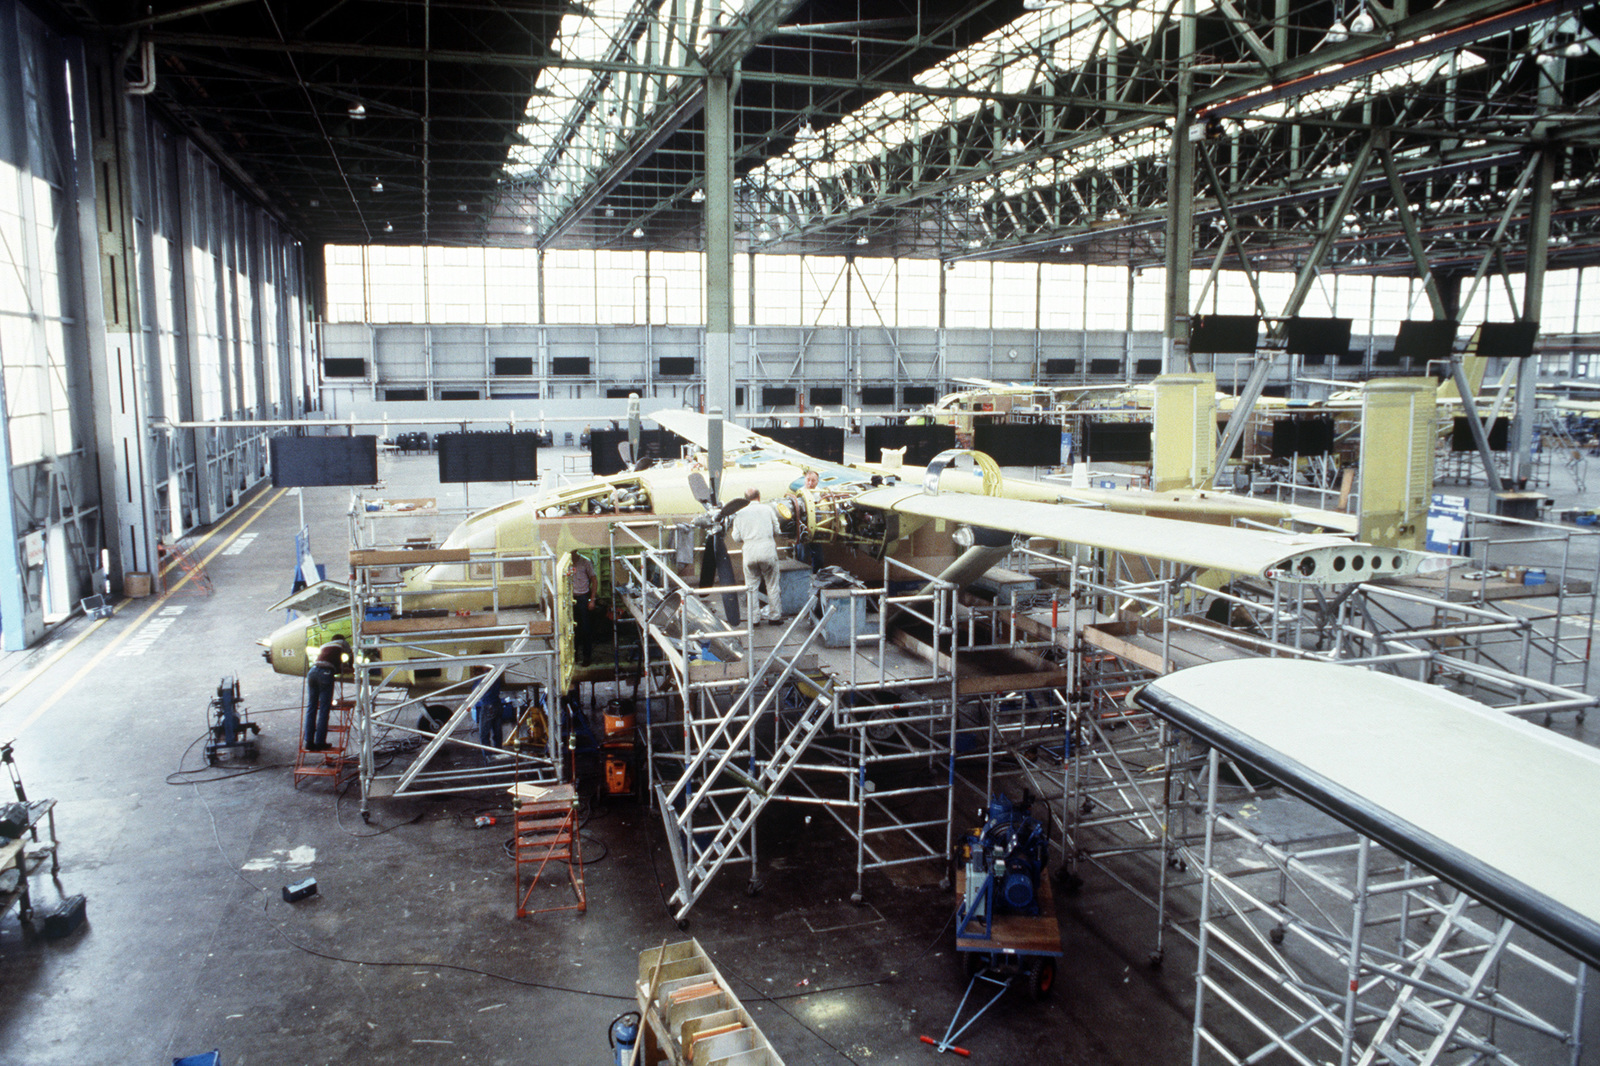 Workers build C-23A Sherpa aircraft at the Short Brothers Belfast aerospace complex. A total of 18 C-23As will be completed for use by the US Air Force and the Royal Air Force